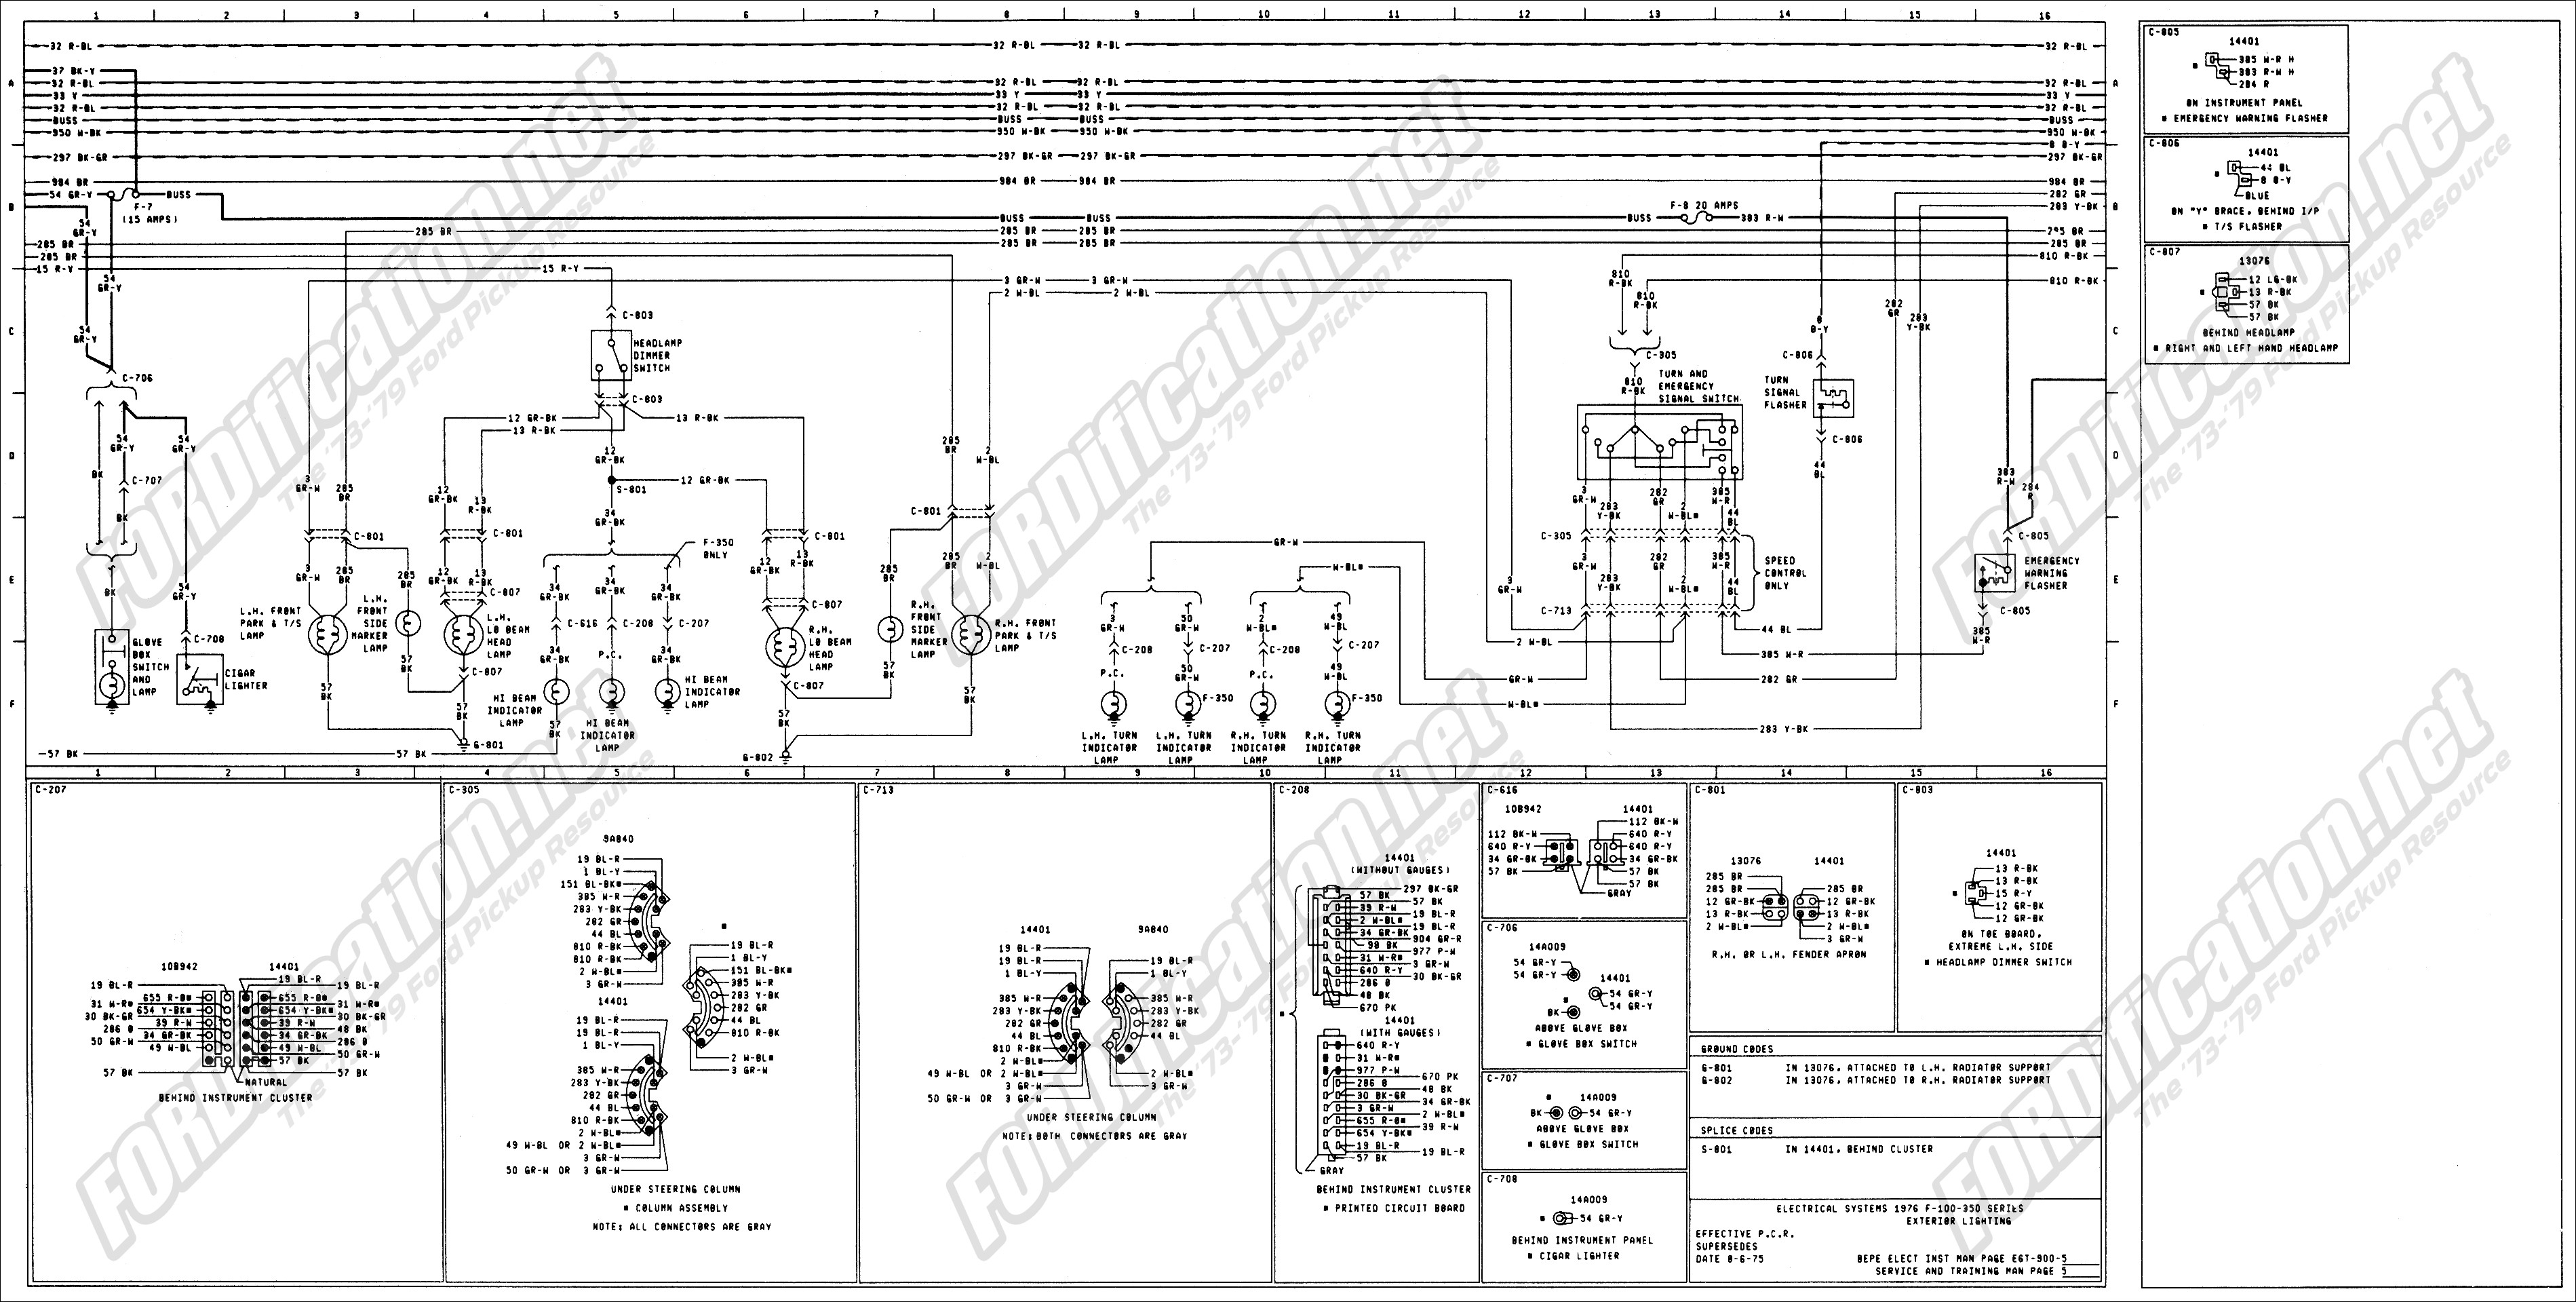 1977 ford f 150 wiring diagram wiring diagram 1979 ford f150 wiring harness 1977 ford wiring harness wiring